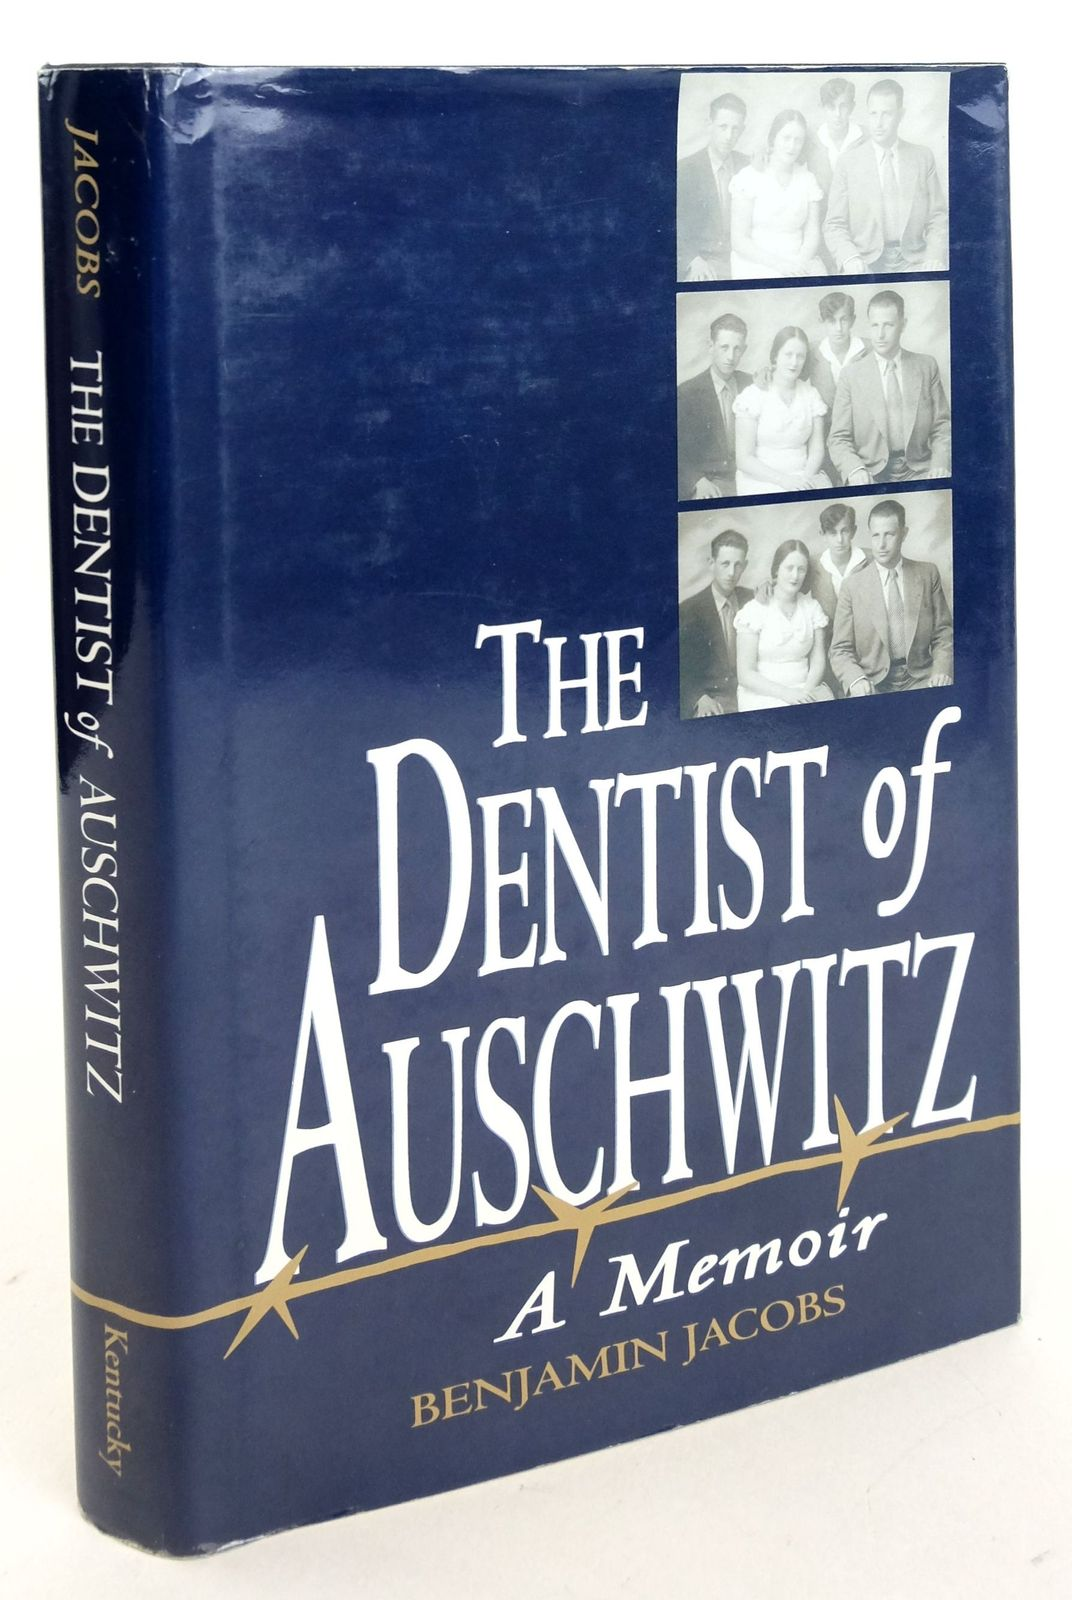 Photo of THE DENTIST OF AUSCHWITZ: A MEMOIR written by Jacobs, Benjamin published by University Press of Kentucky (STOCK CODE: 1819915)  for sale by Stella & Rose's Books